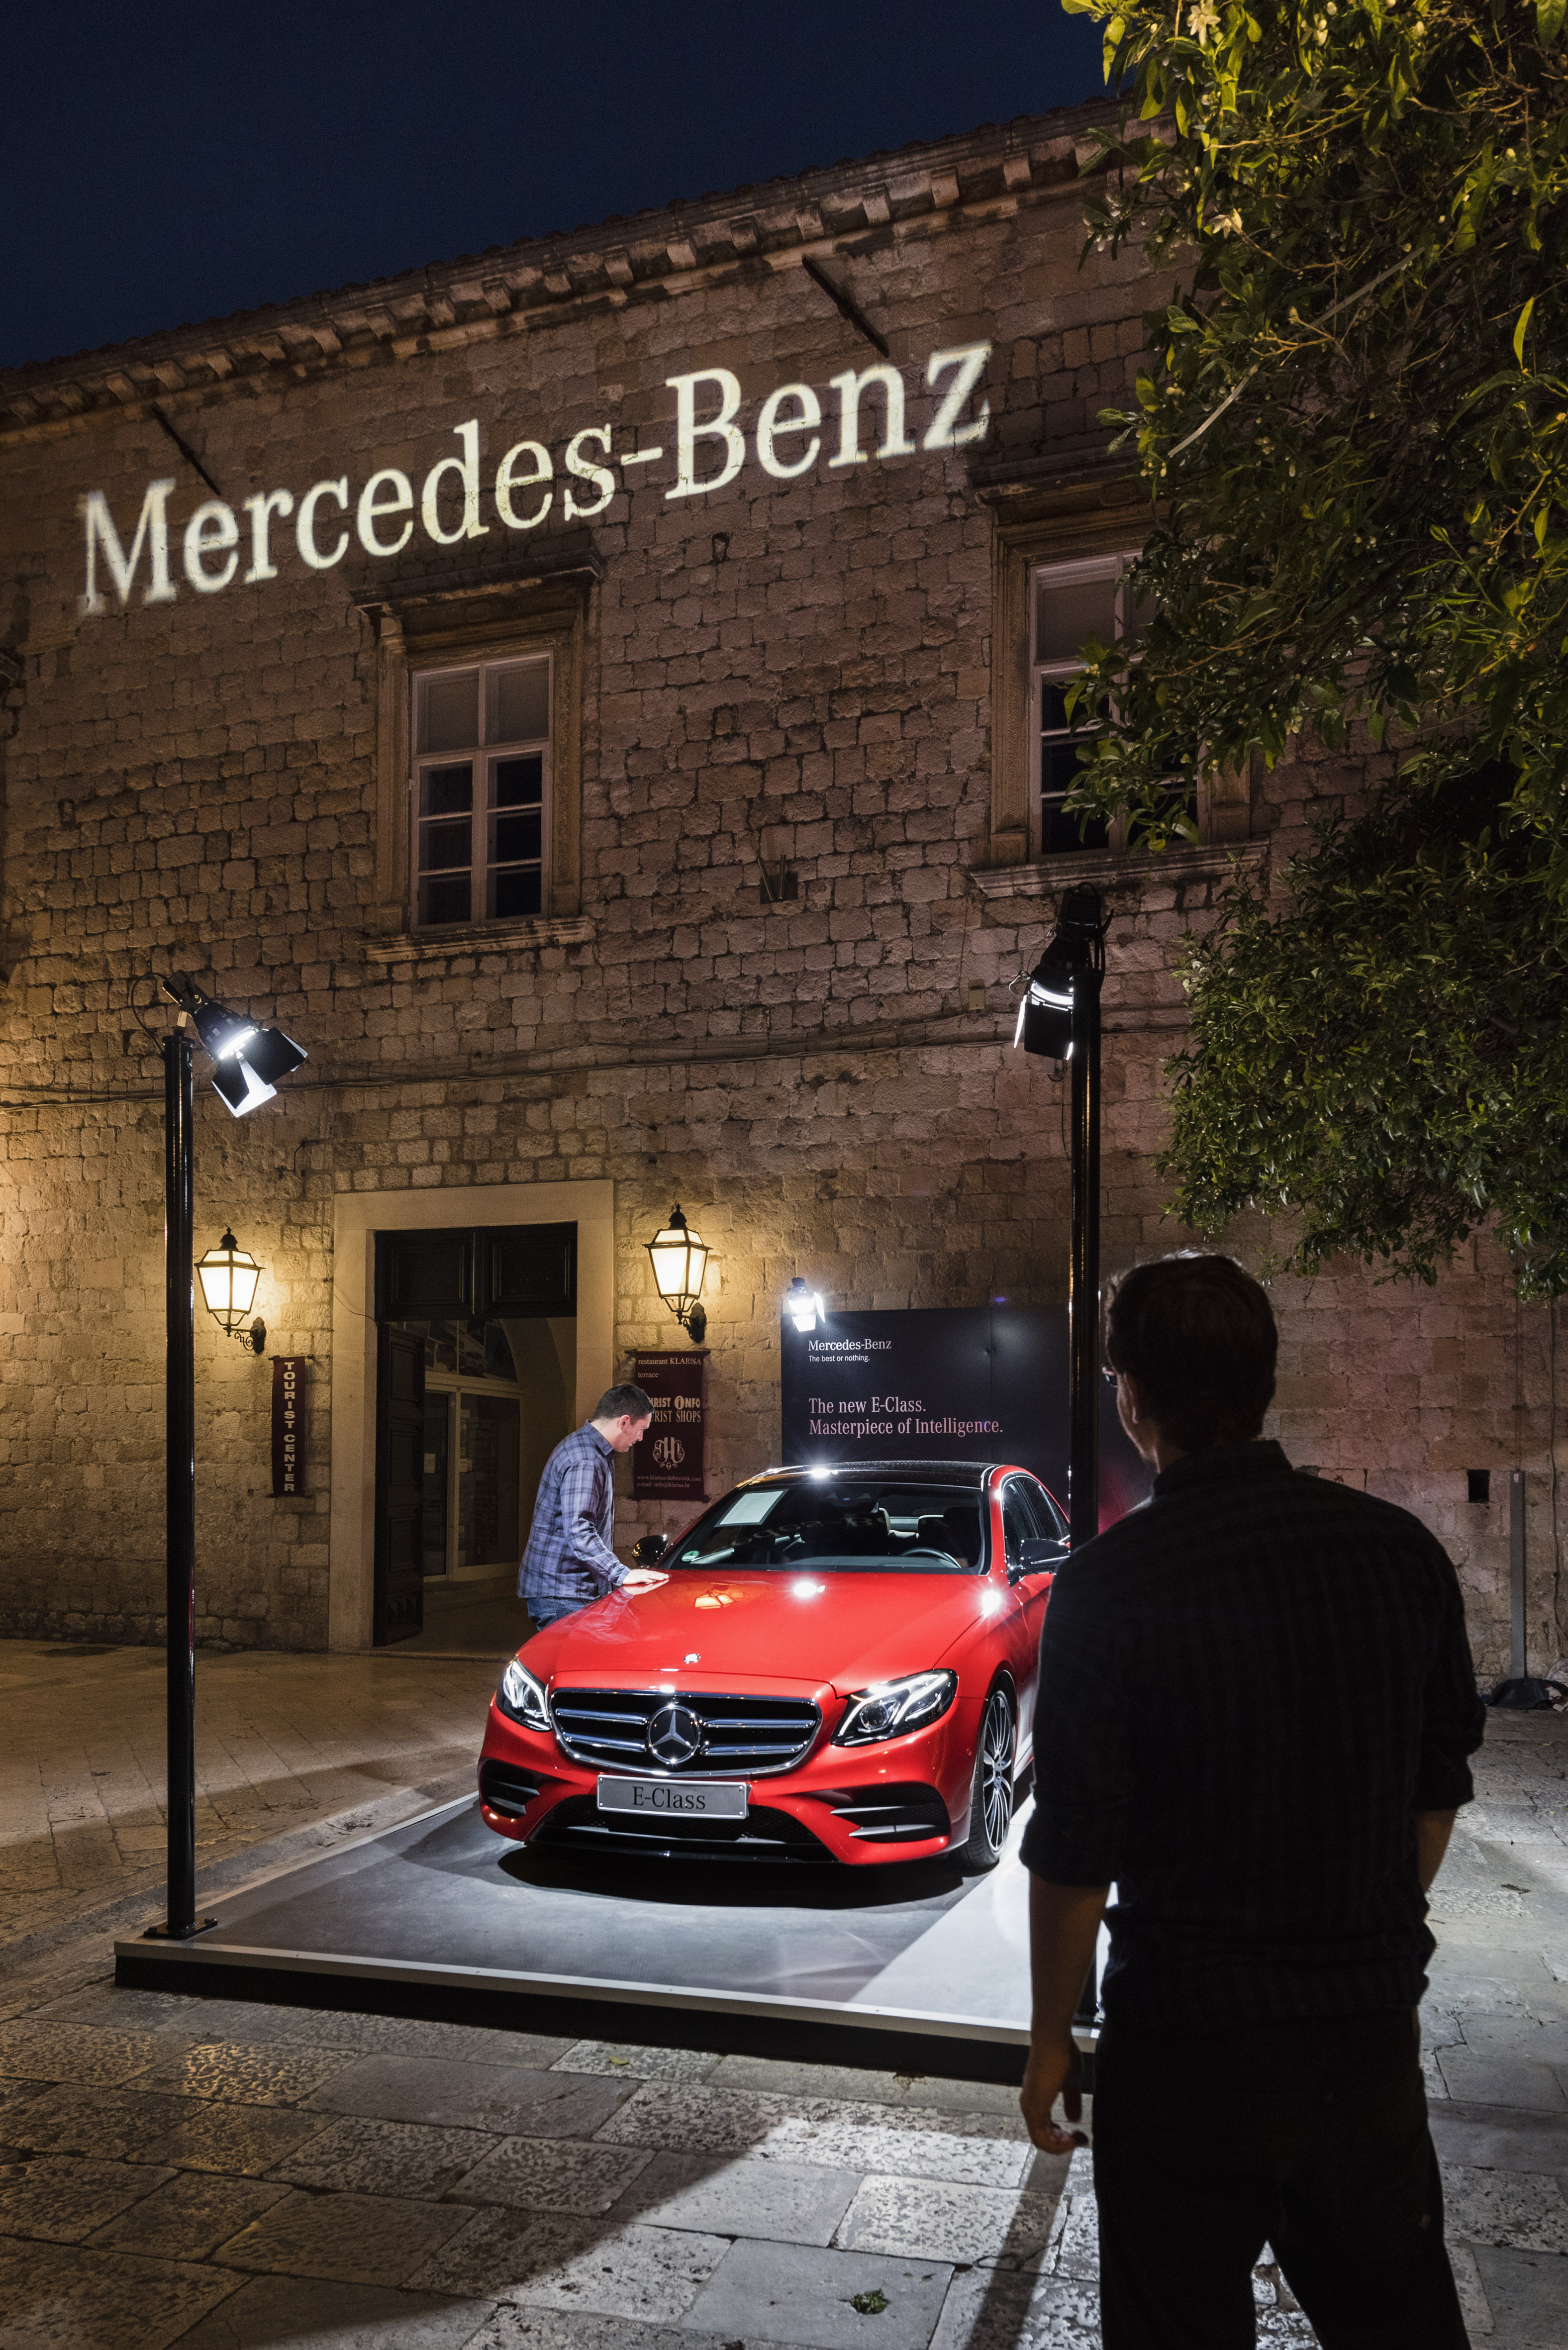 Mercedes benz global training experience the new e class for Mercedes benz events